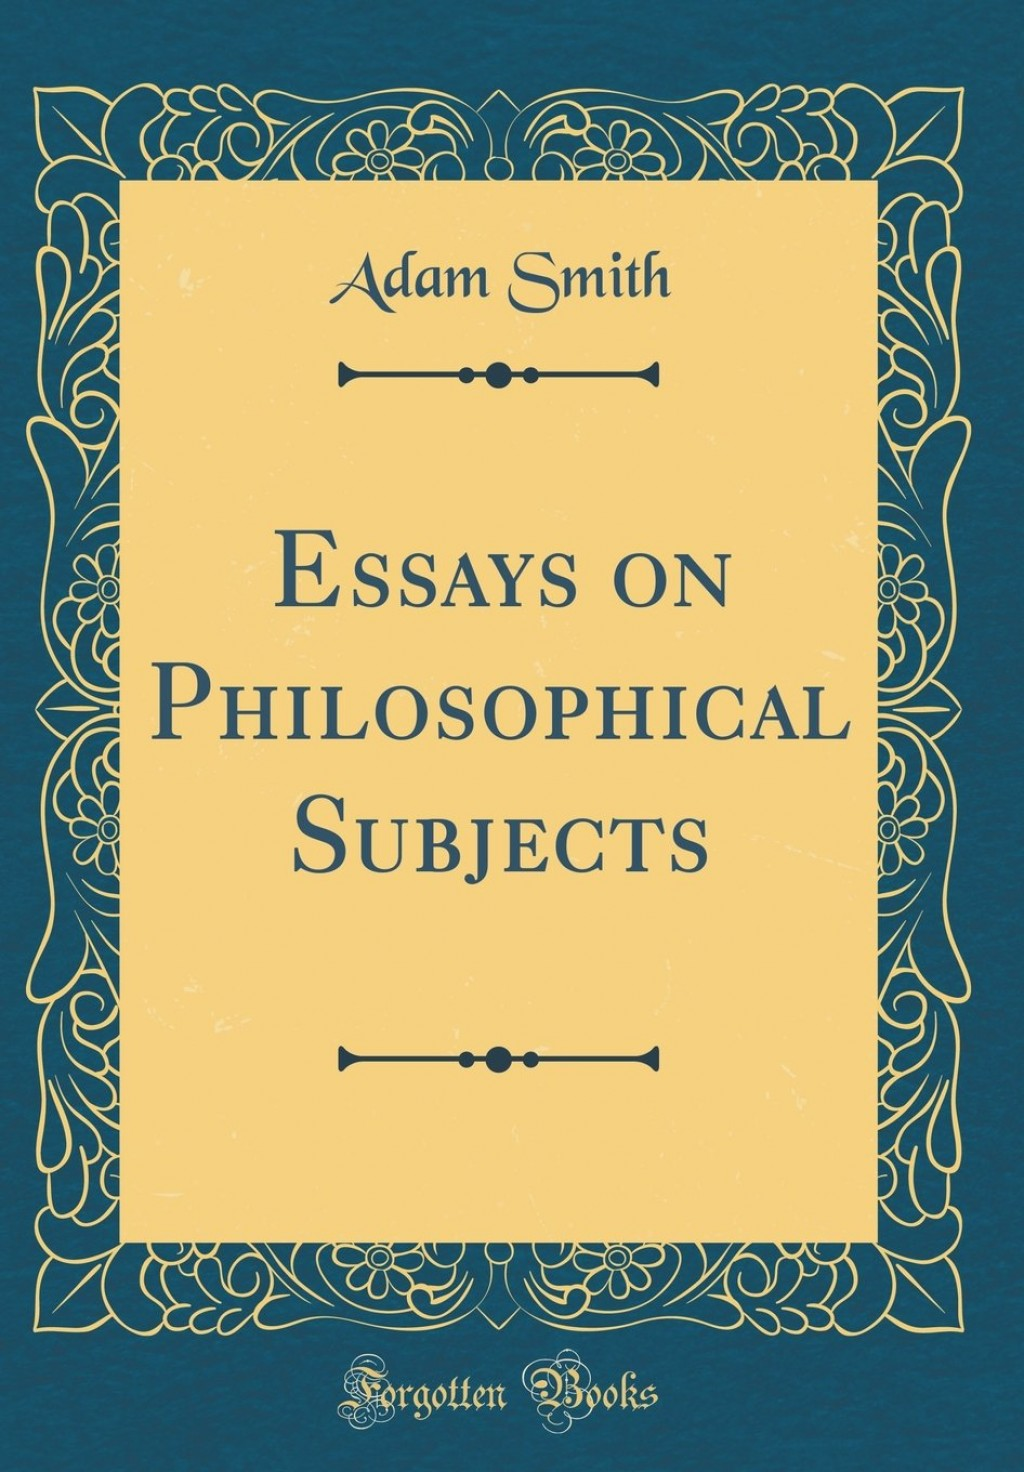 007 Rddwarl Essays On Philosophical Subjects Essay Best Smith Pdf Large